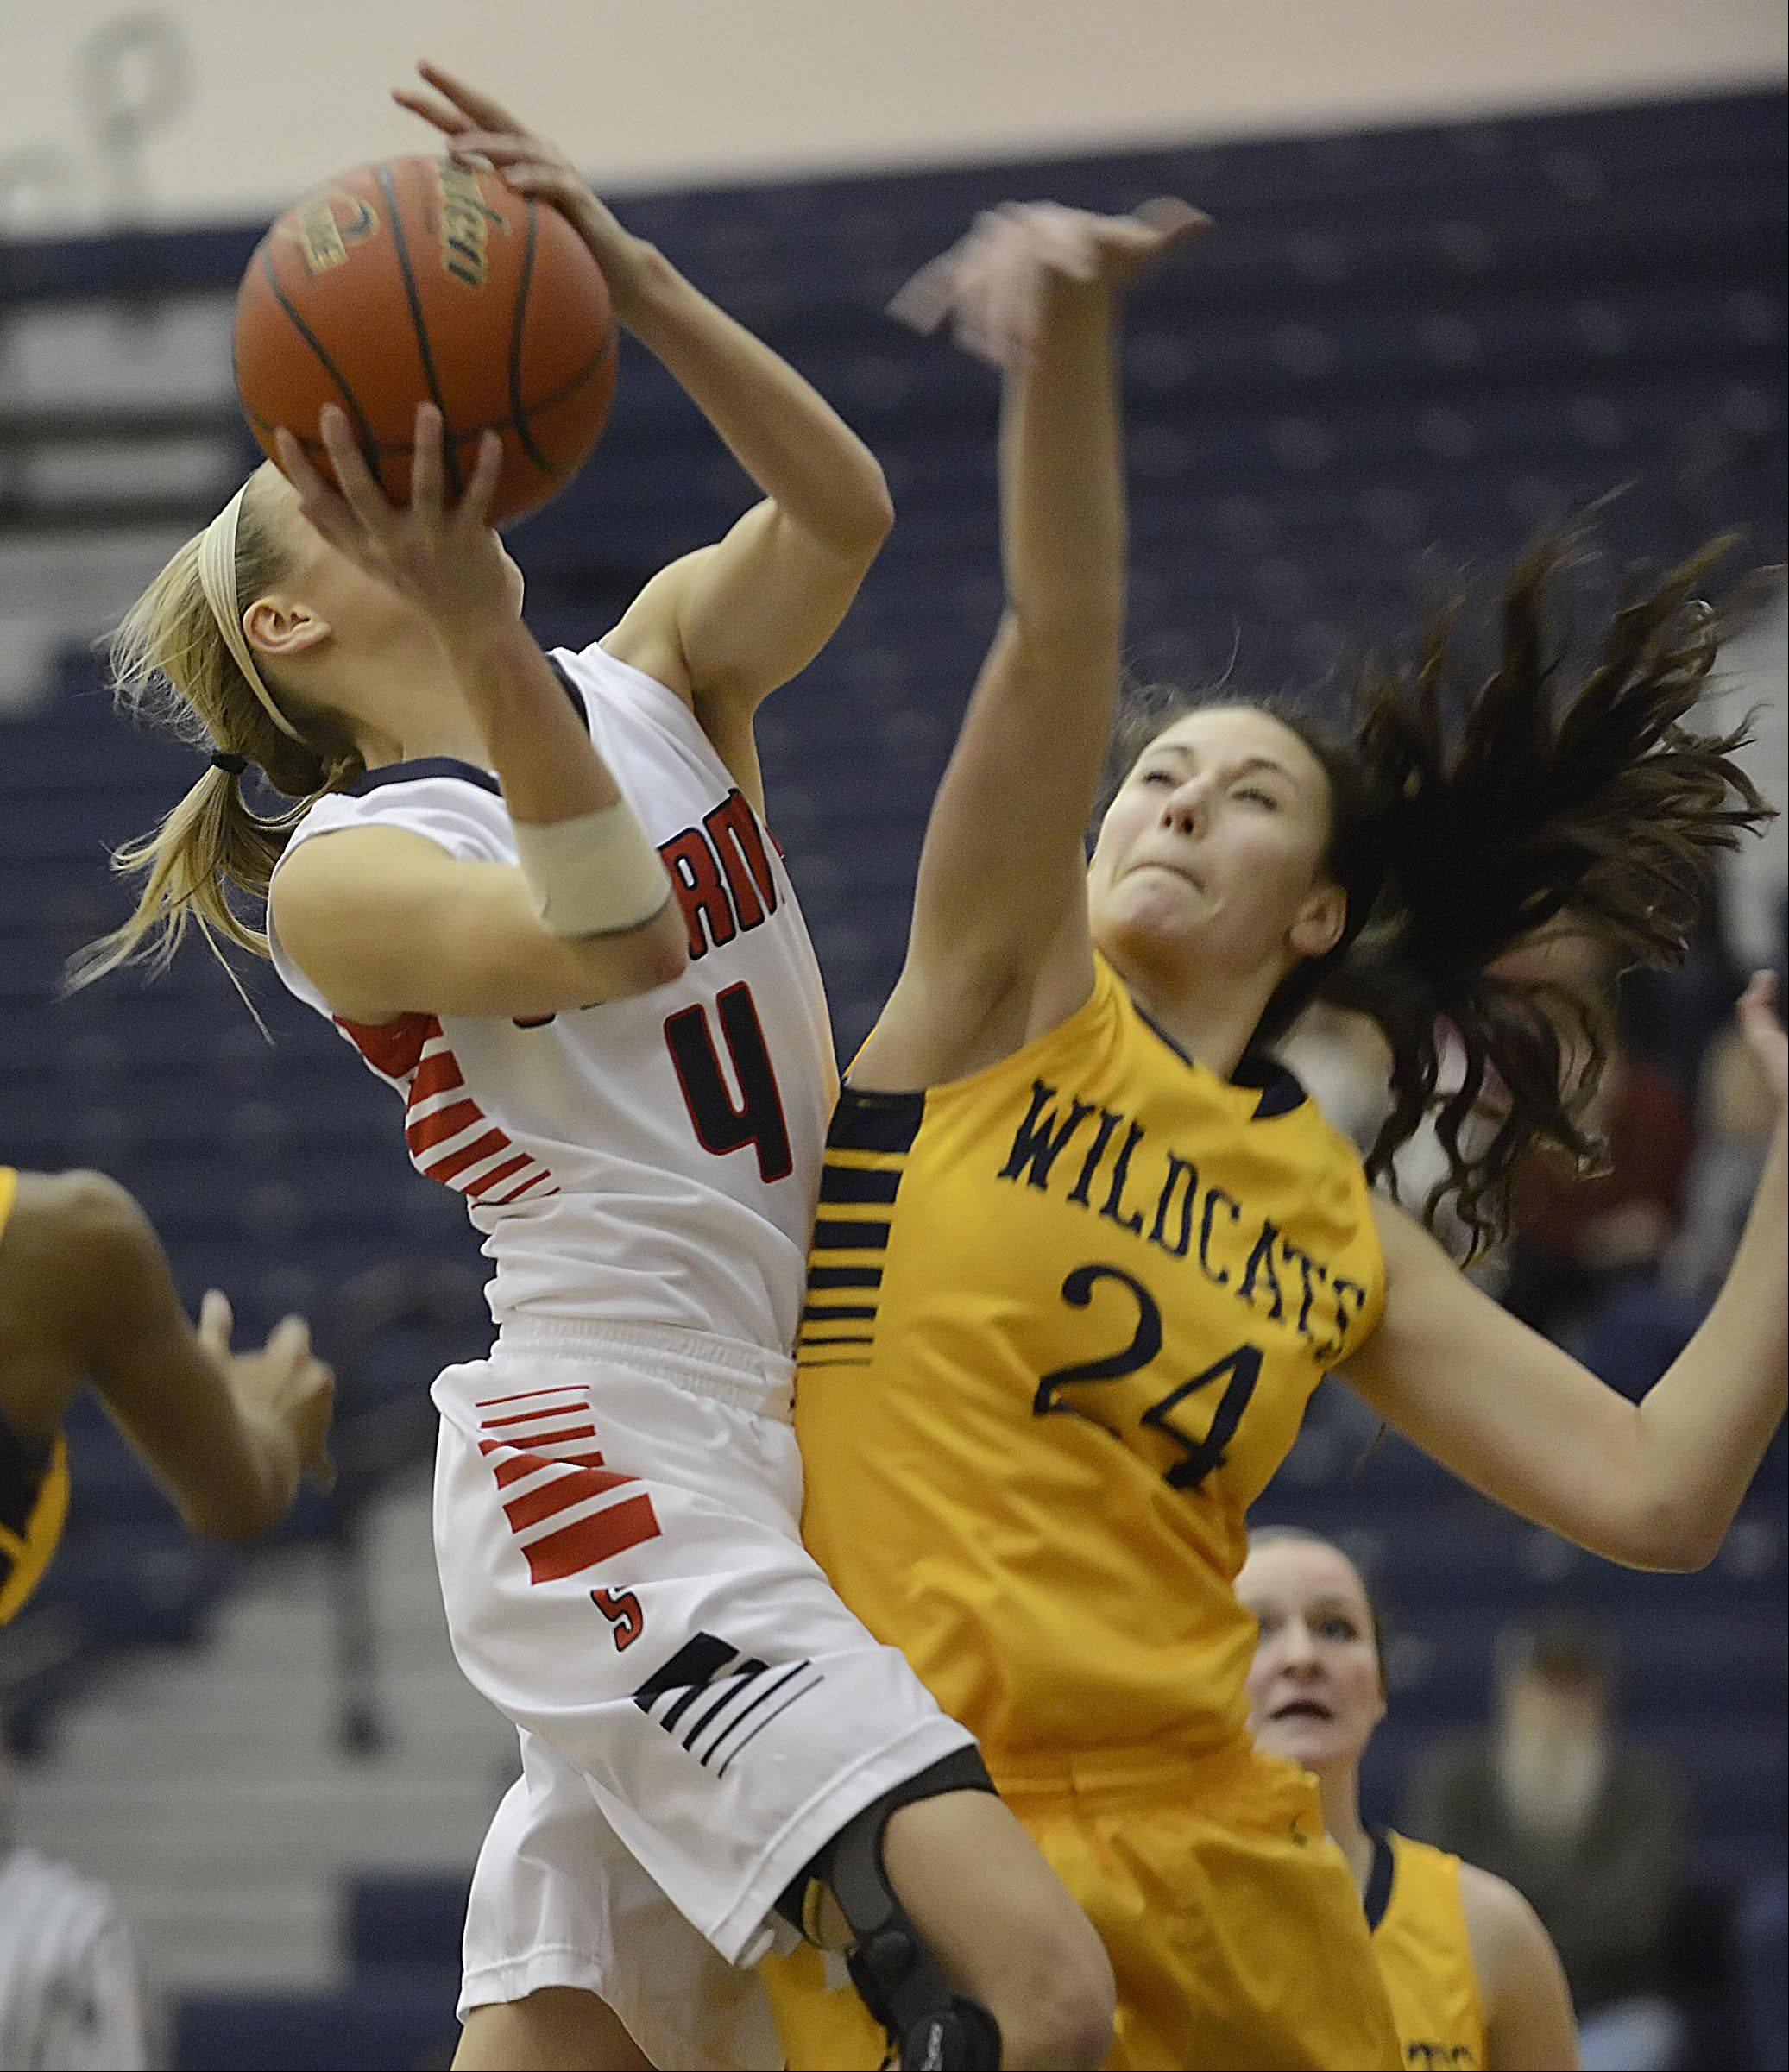 South Elgin's Savanah Uveges is fouled by Neuqua Valley's Bryce Menendez.